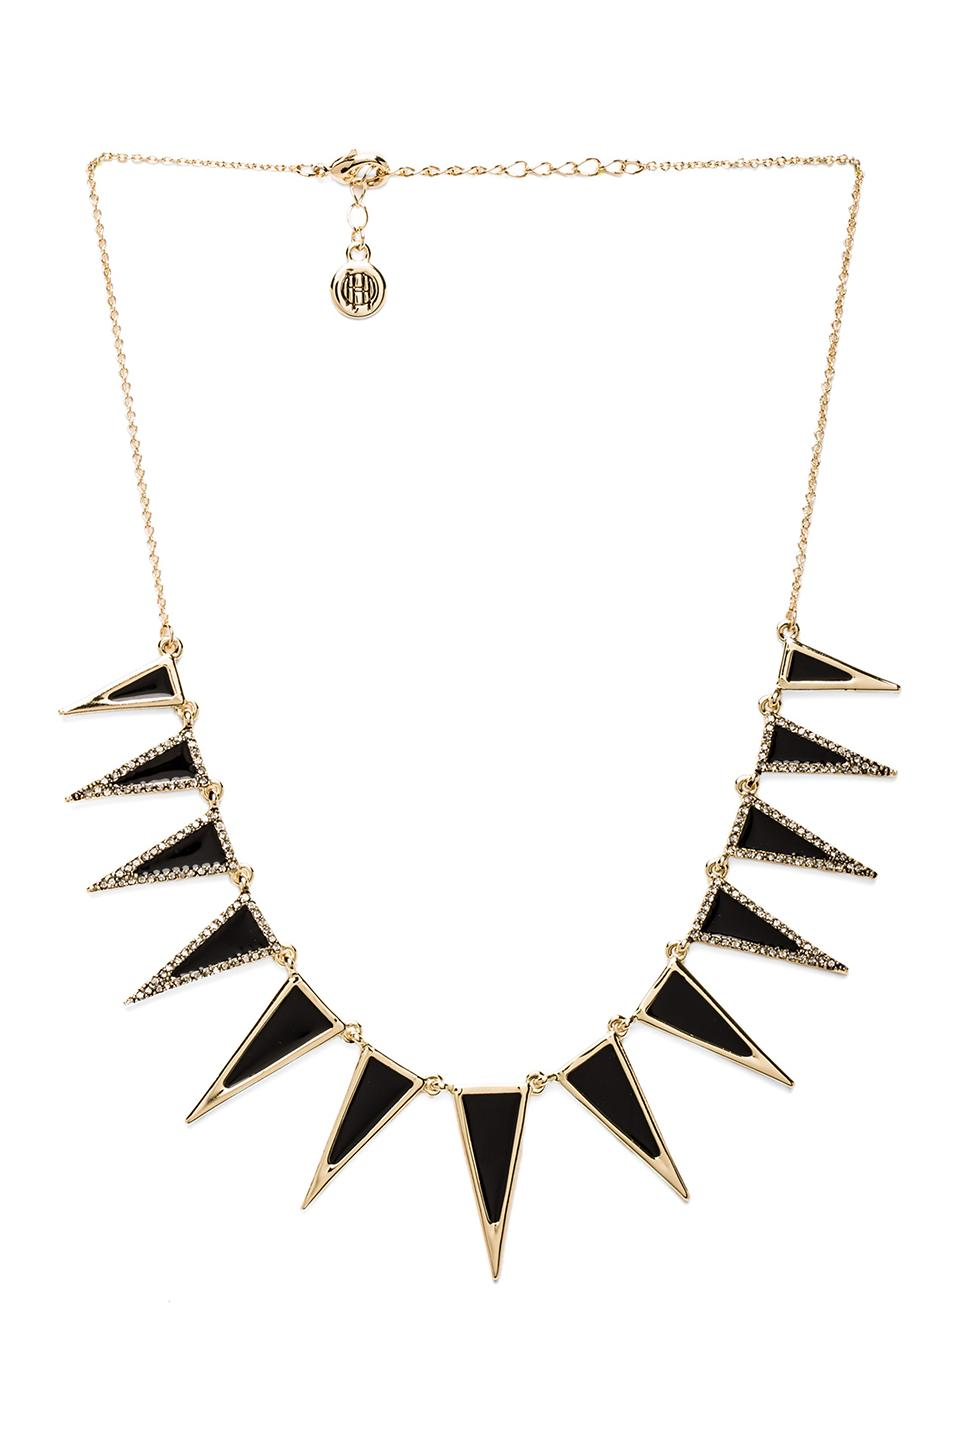 House of Harlow 1960 House of Harlow Enameled Echelon Collar Necklace in Gunmetal